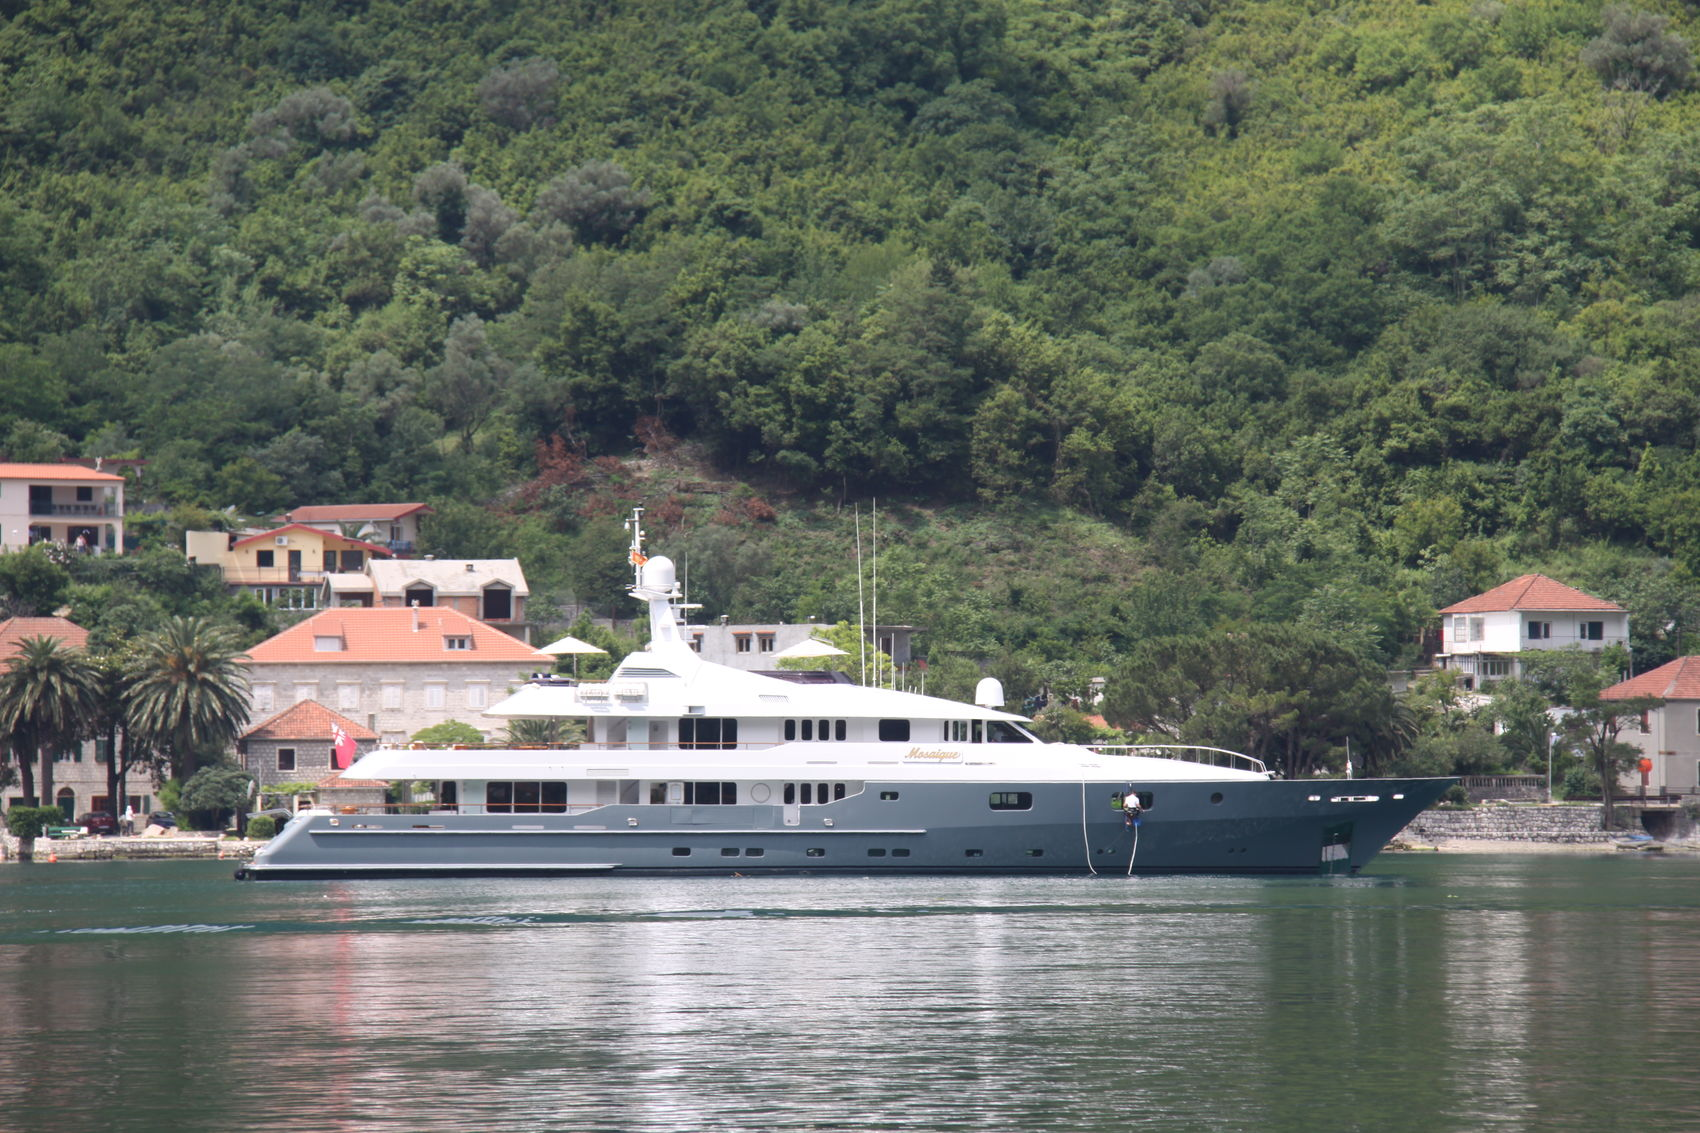 Luxury Charter Vacations Aboard Motor Yacht Mosaique